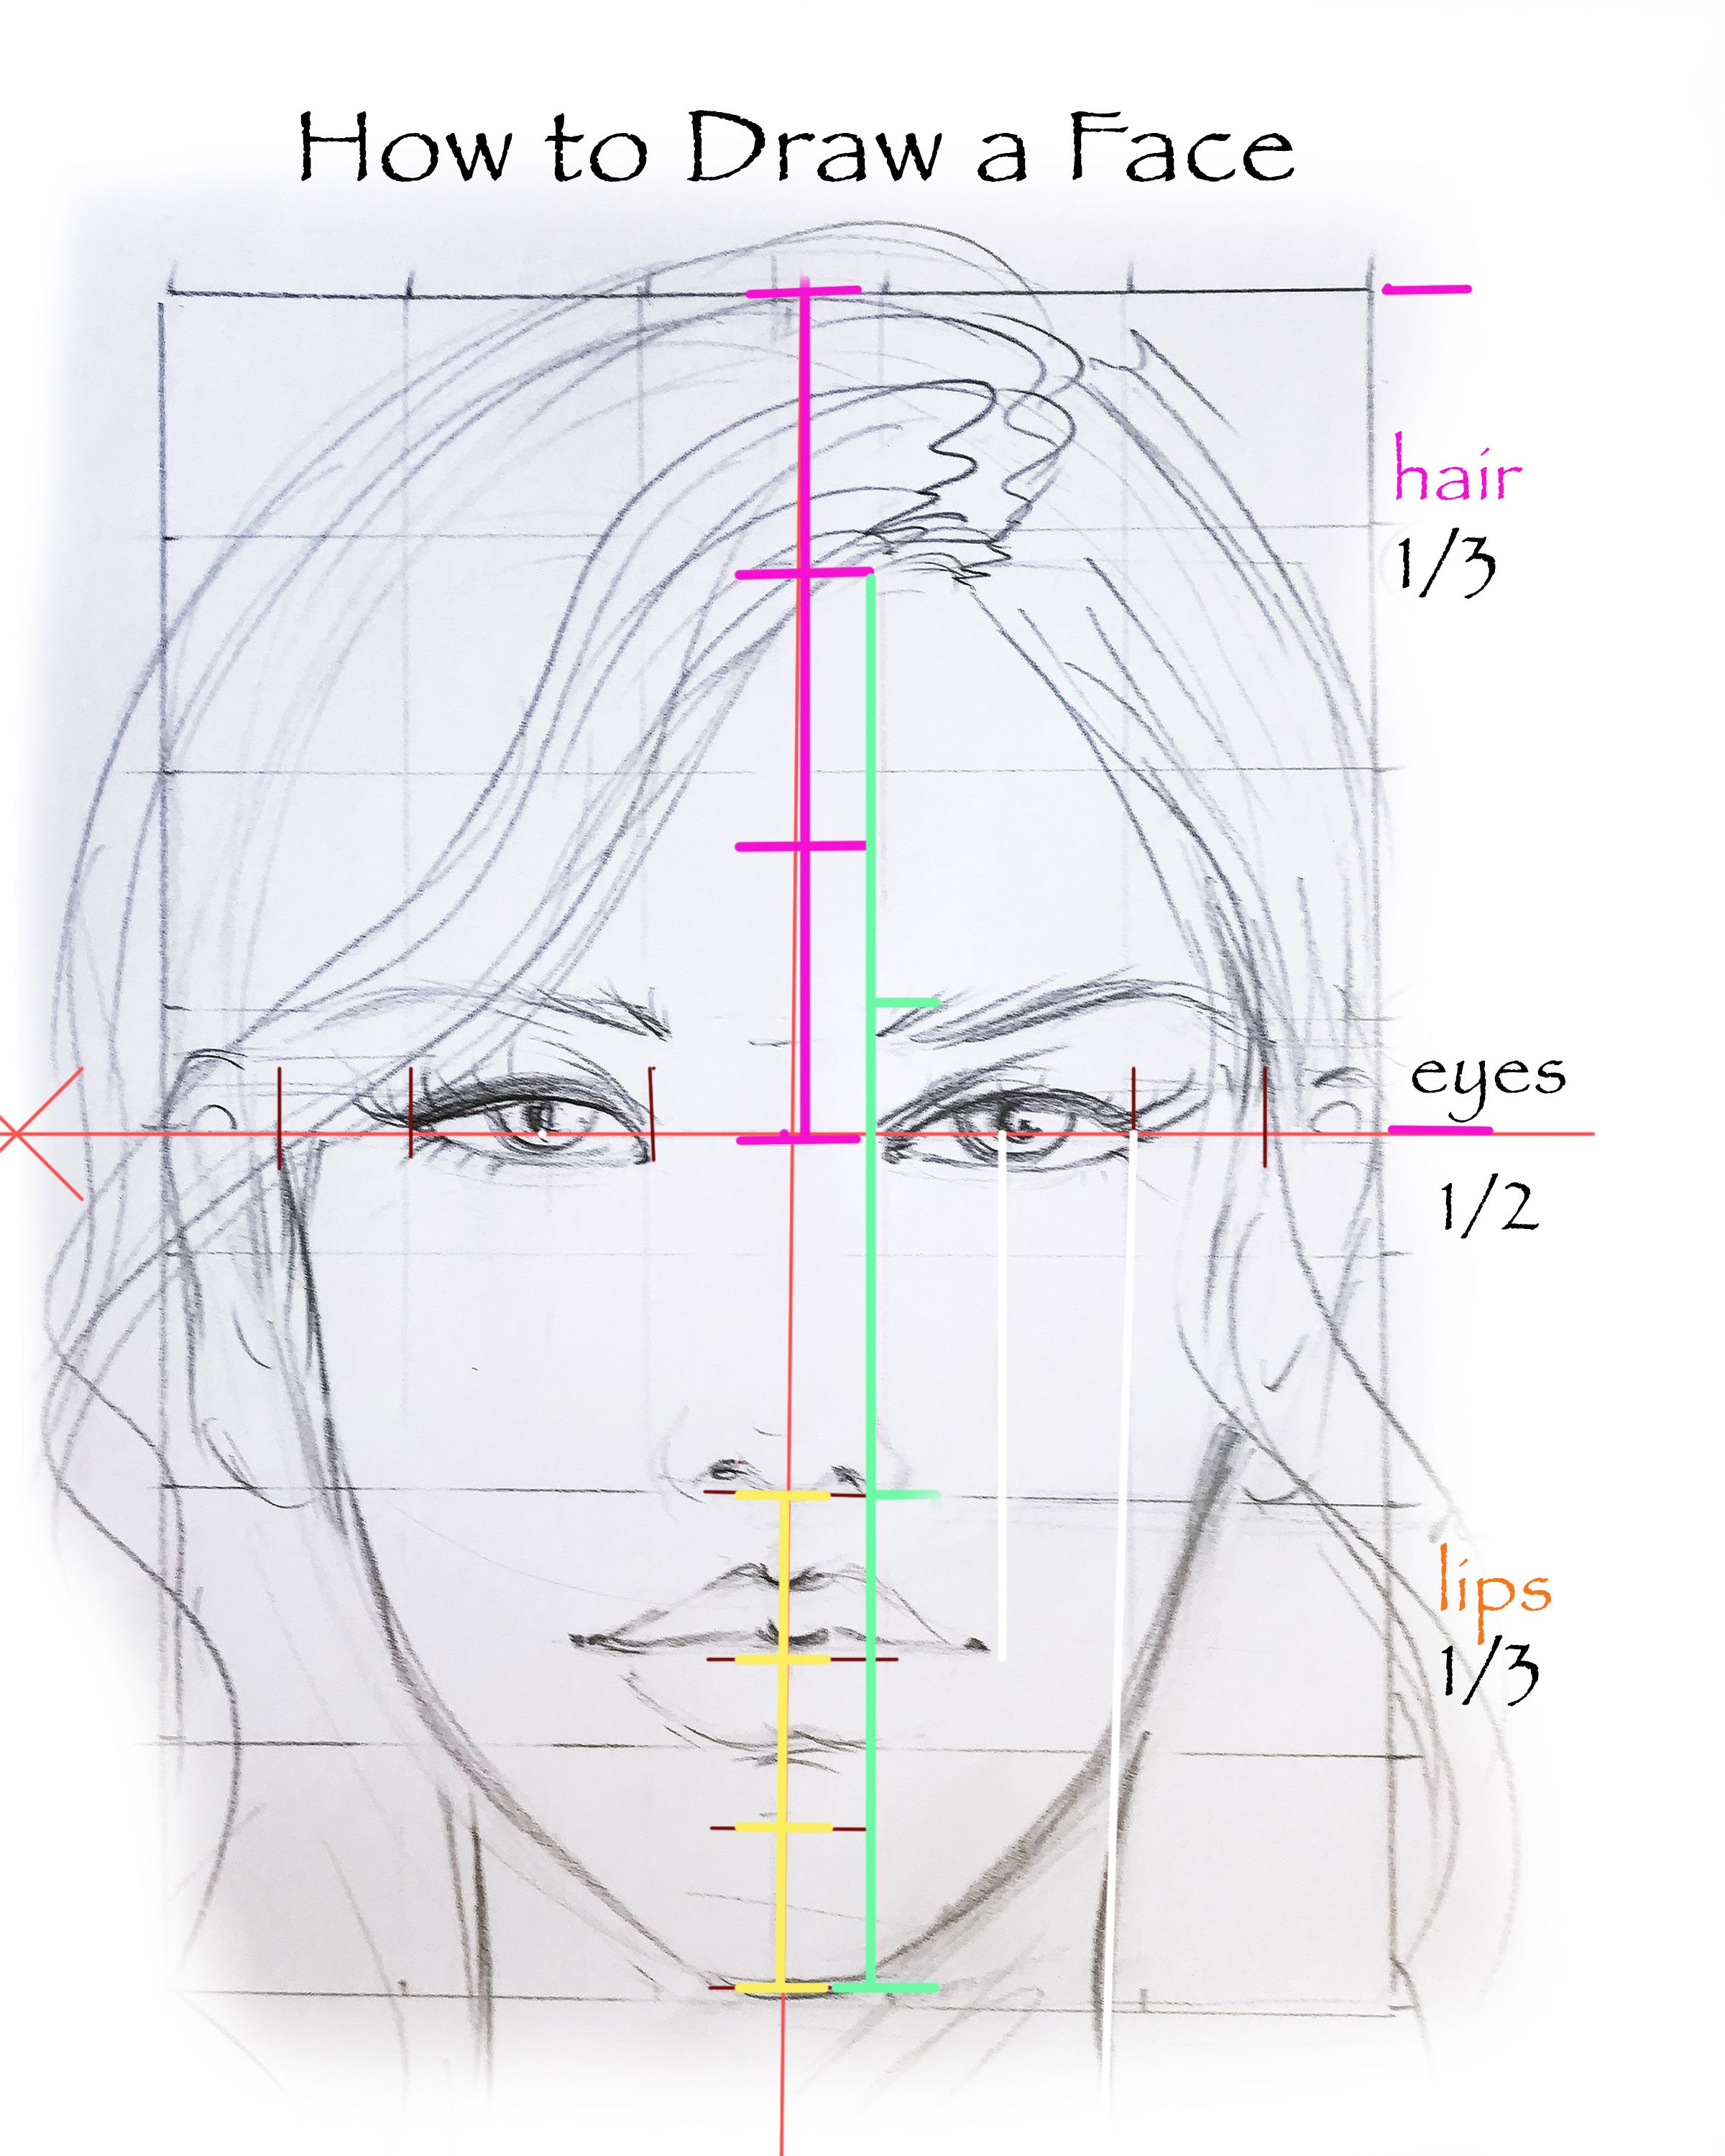 How to draw a face tutorial face tutorial drawing pinterest how to draw a face tutorial face tutorial ccuart Choice Image